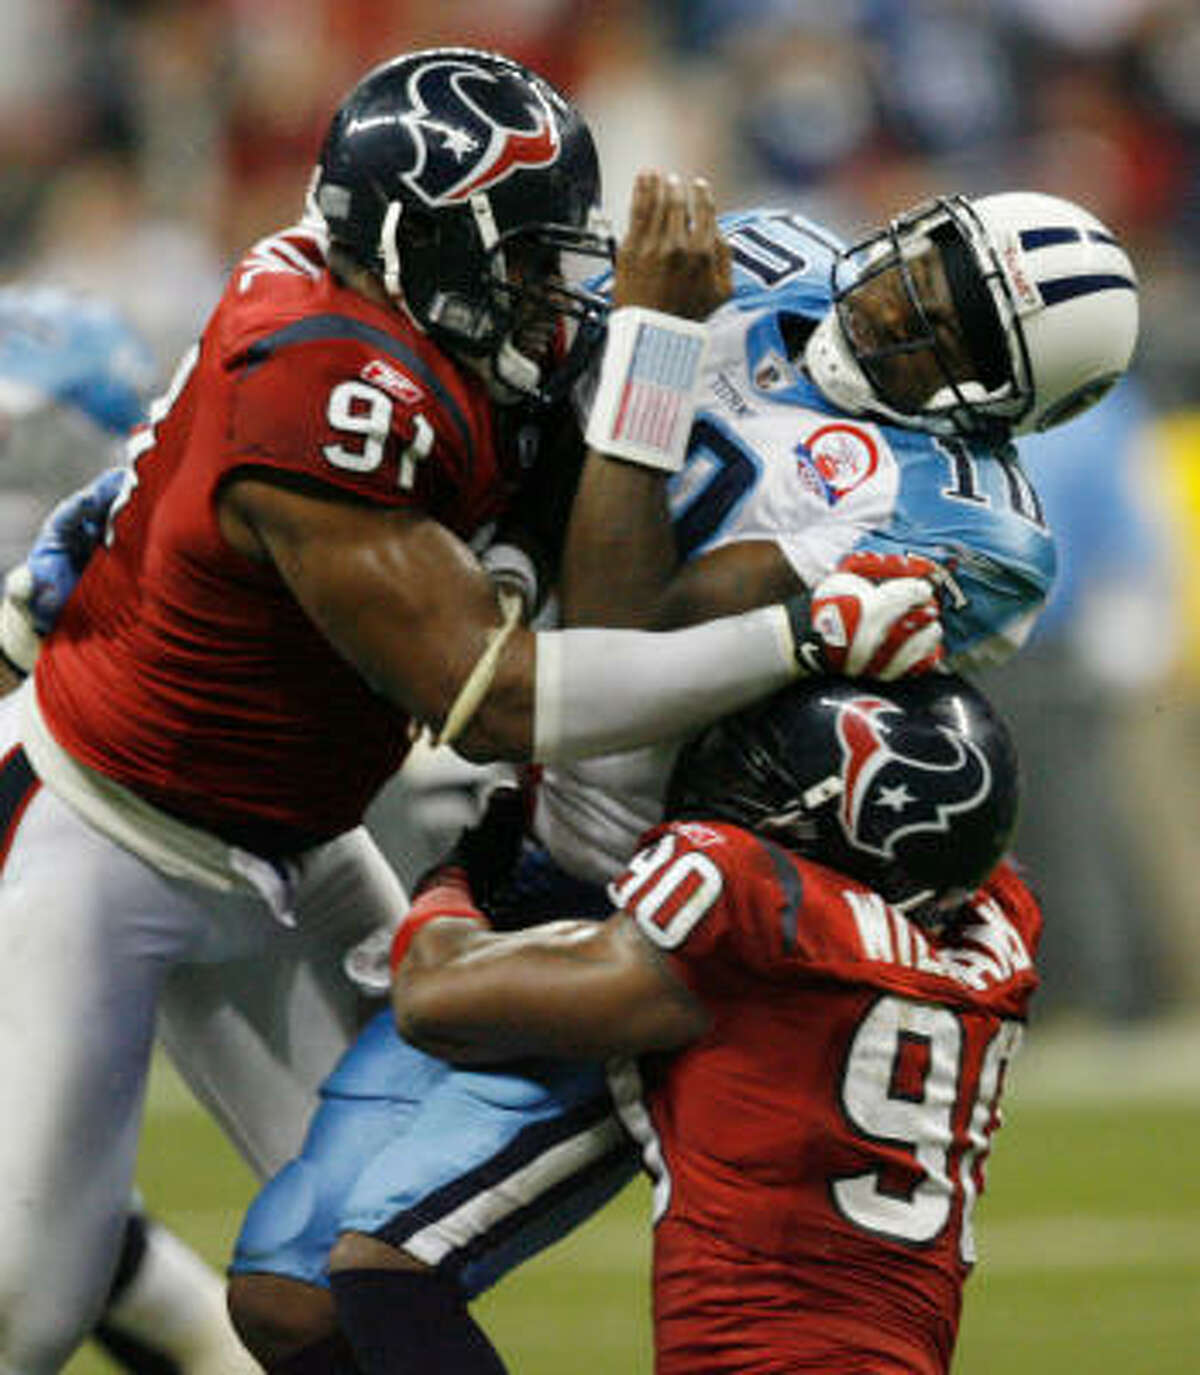 22-year-old Amobi Okoye believes the potential the Texans first saw in him will be realized this season.